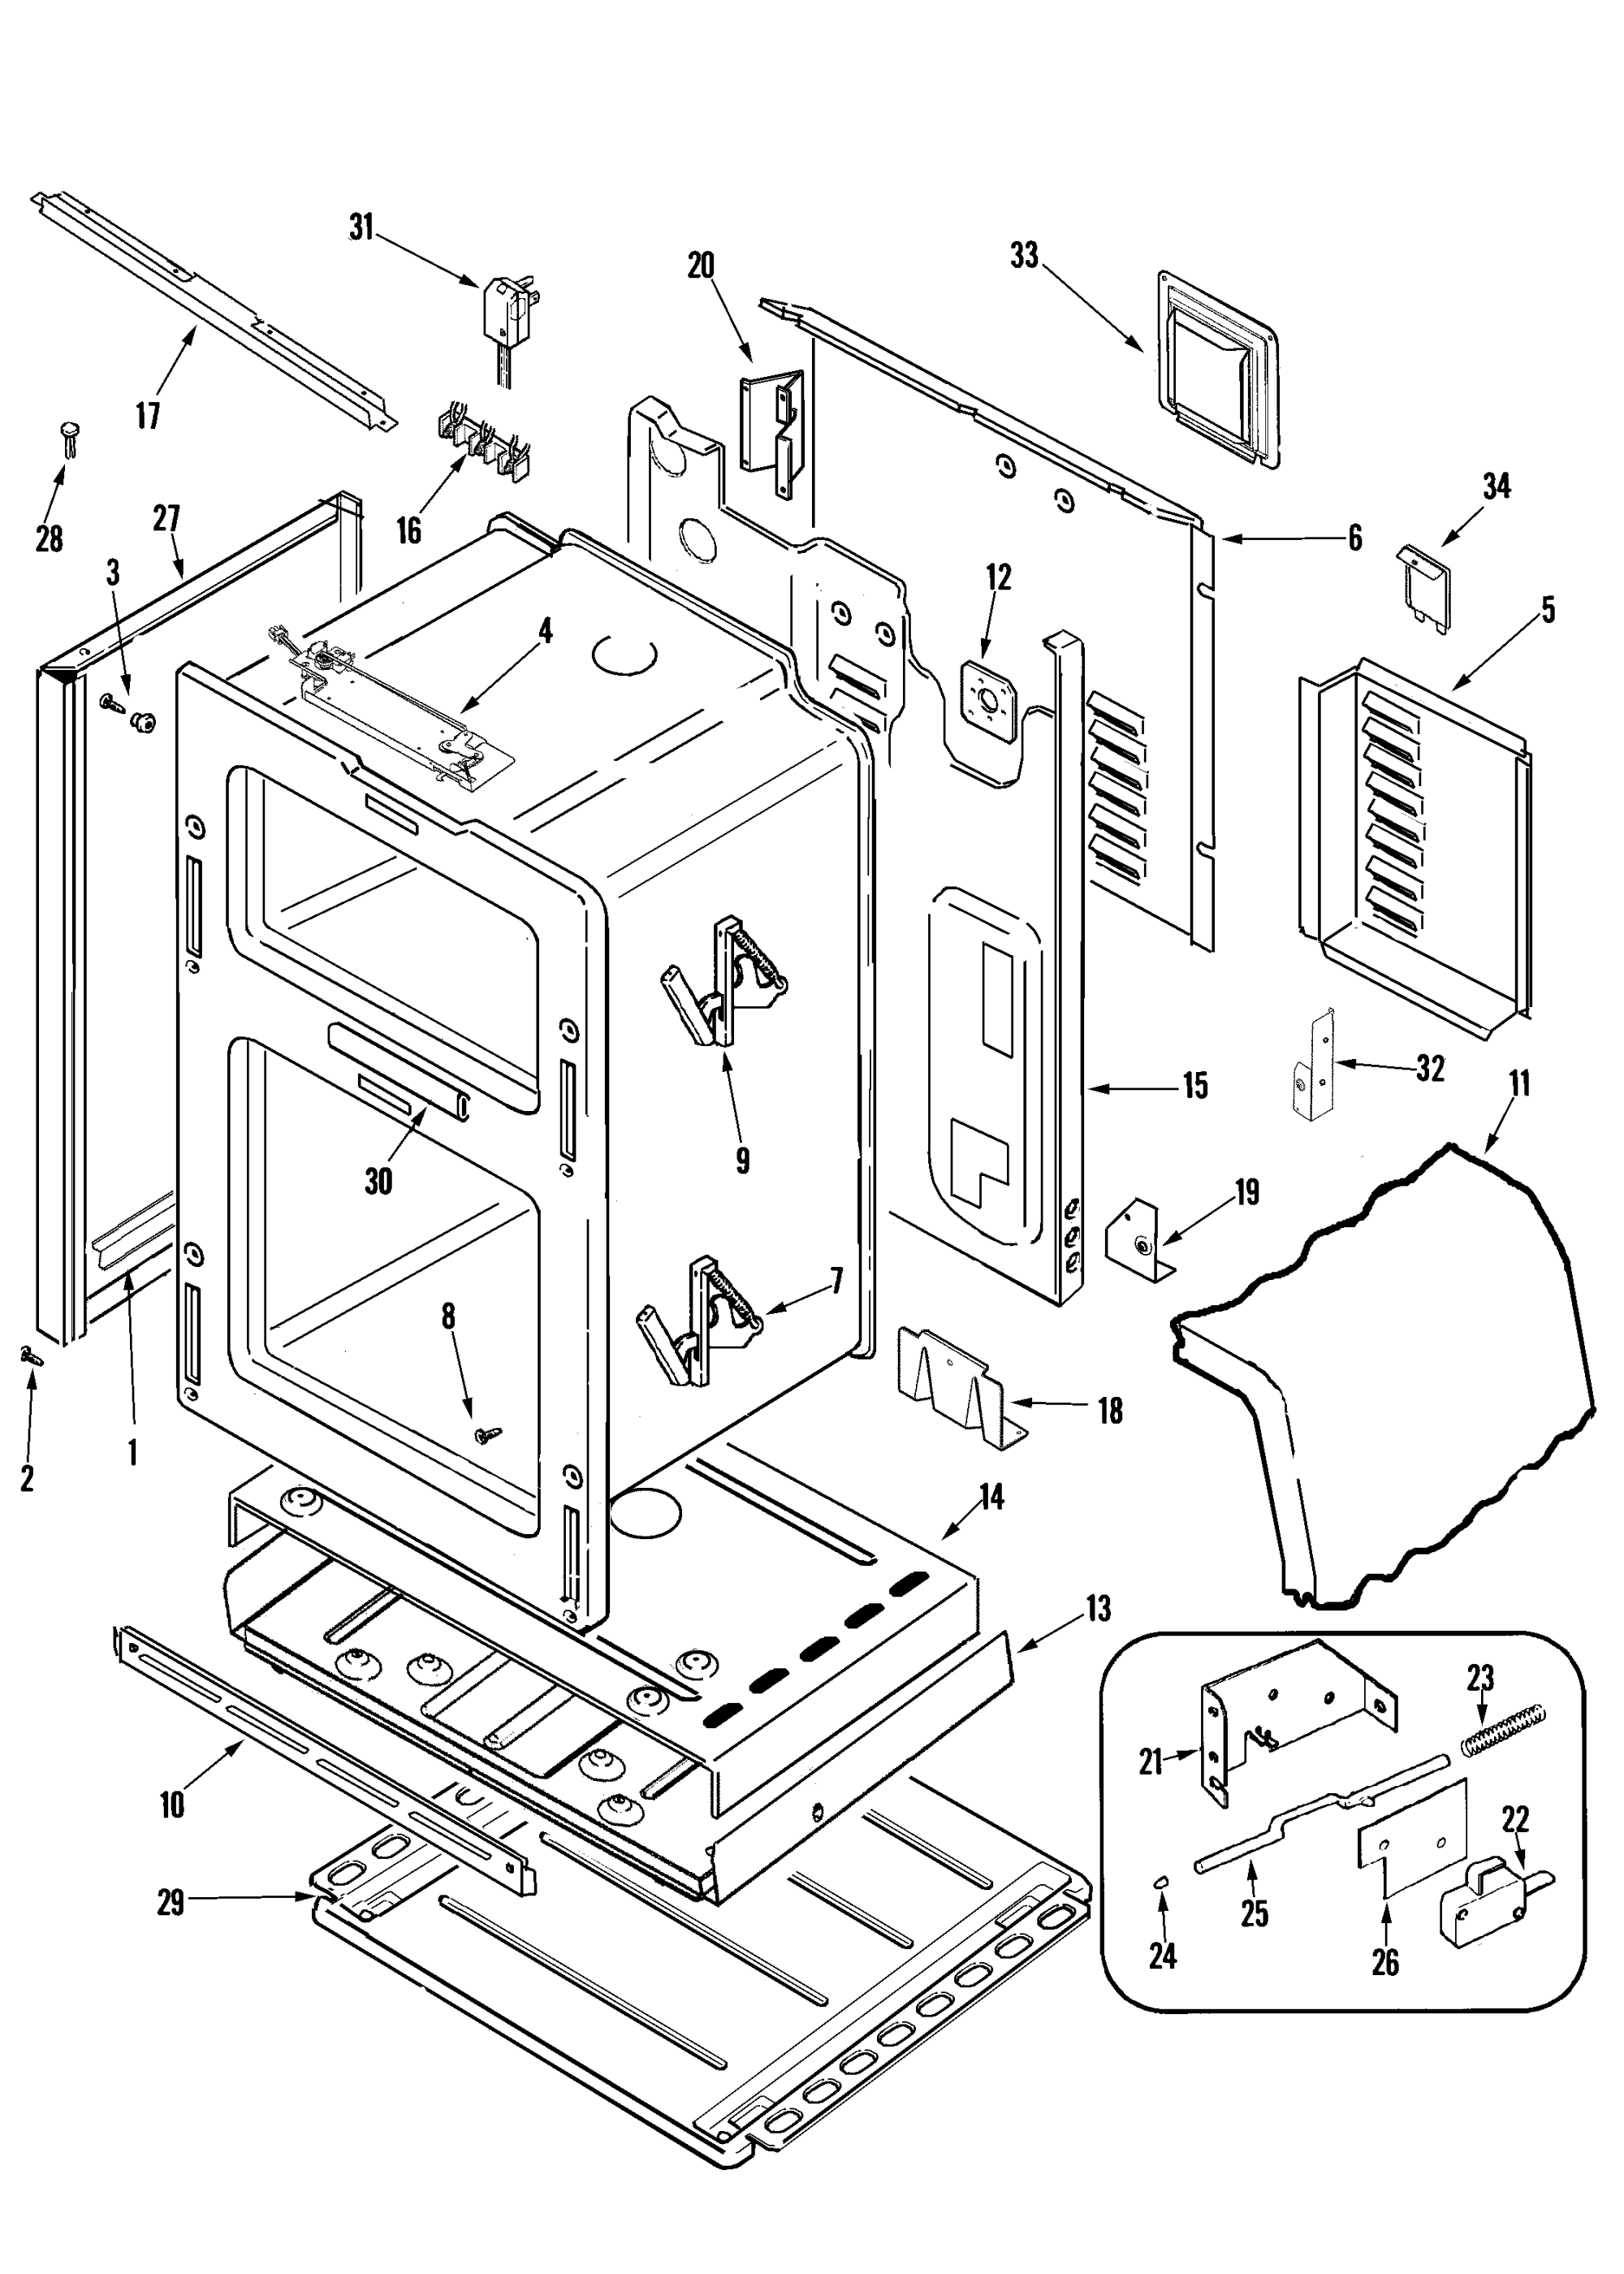 hight resolution of maytag washer motor wiring diagram motor repalcement parts andmaytag washer wiring schematic schematic diagram